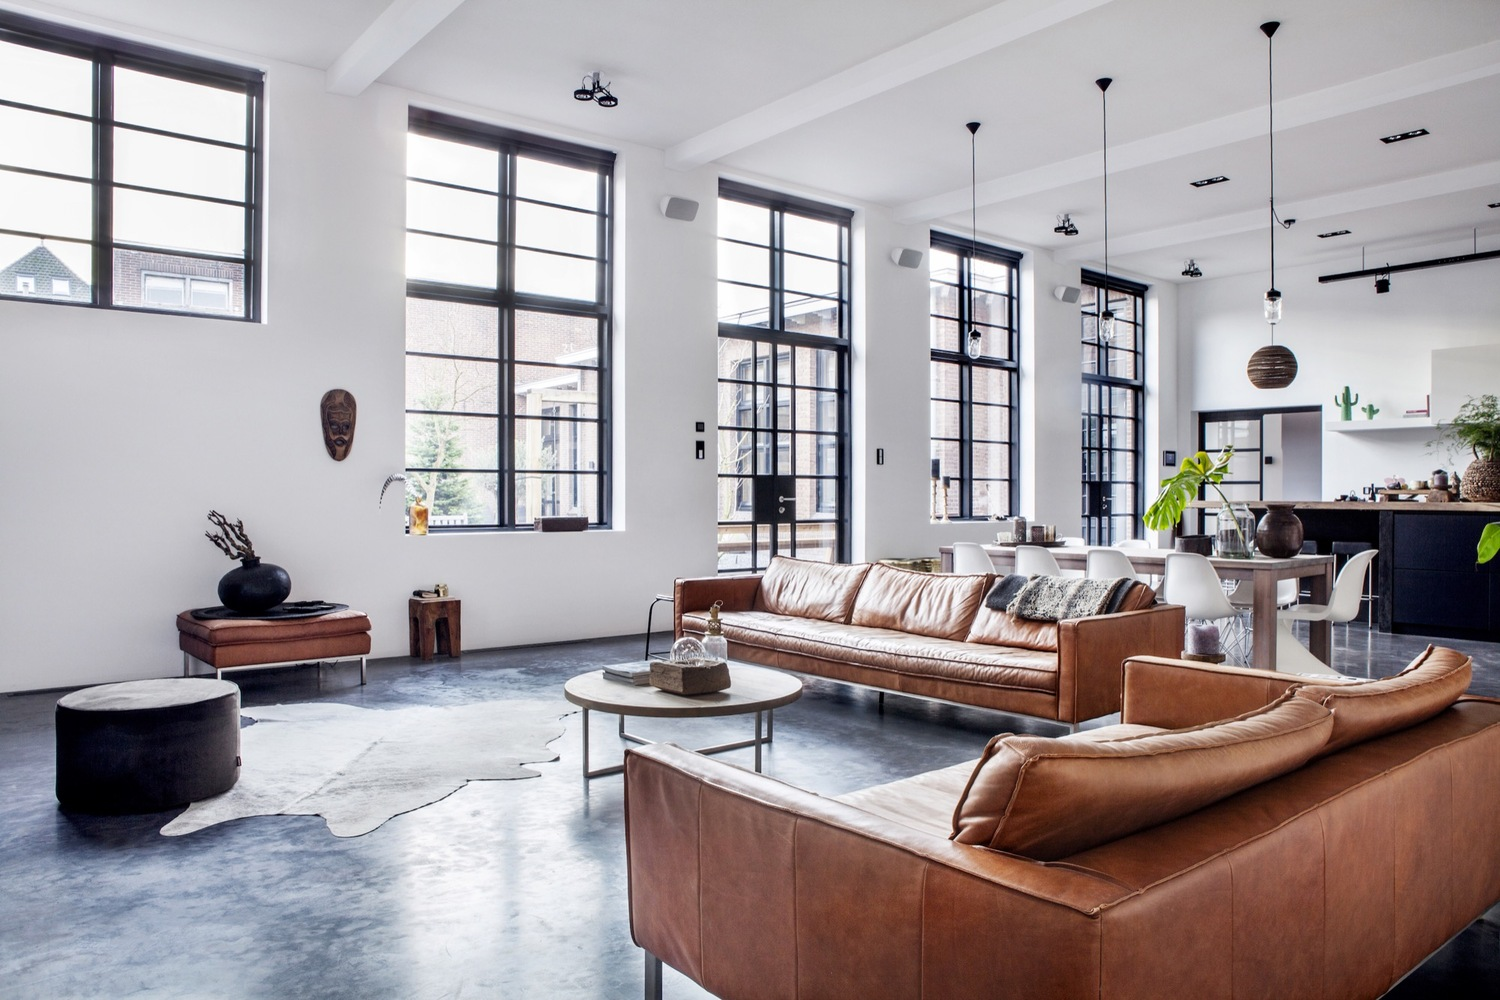 Converted School into Gorgeous Family Home | Trendland